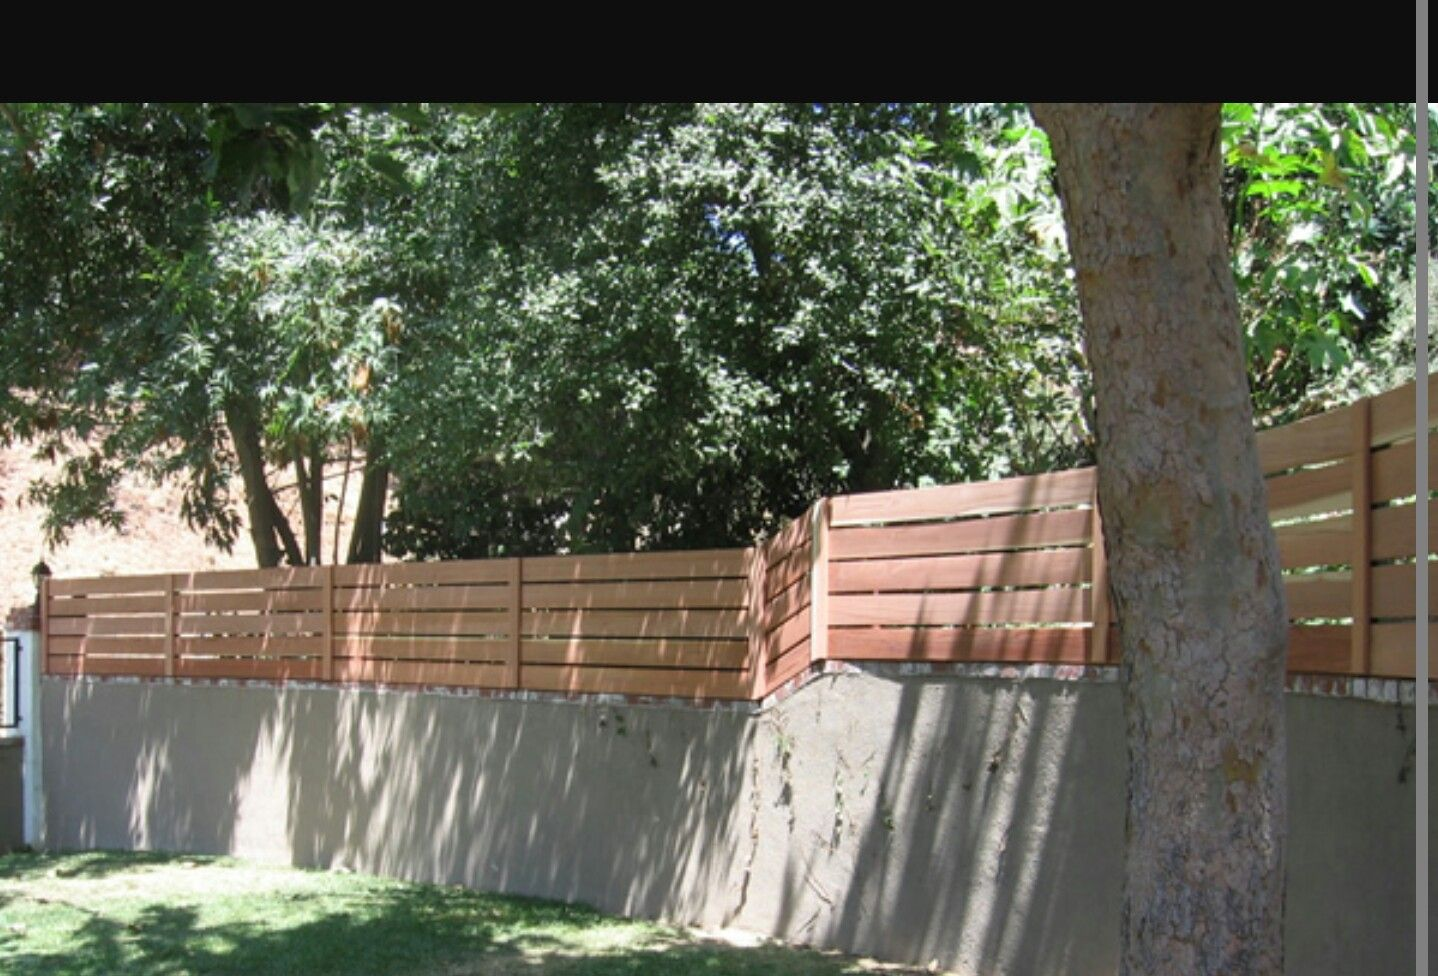 Block Wall Fence Toppers Landscaping Retaining Walls Wood Fence Gates Wooden Fence Gate